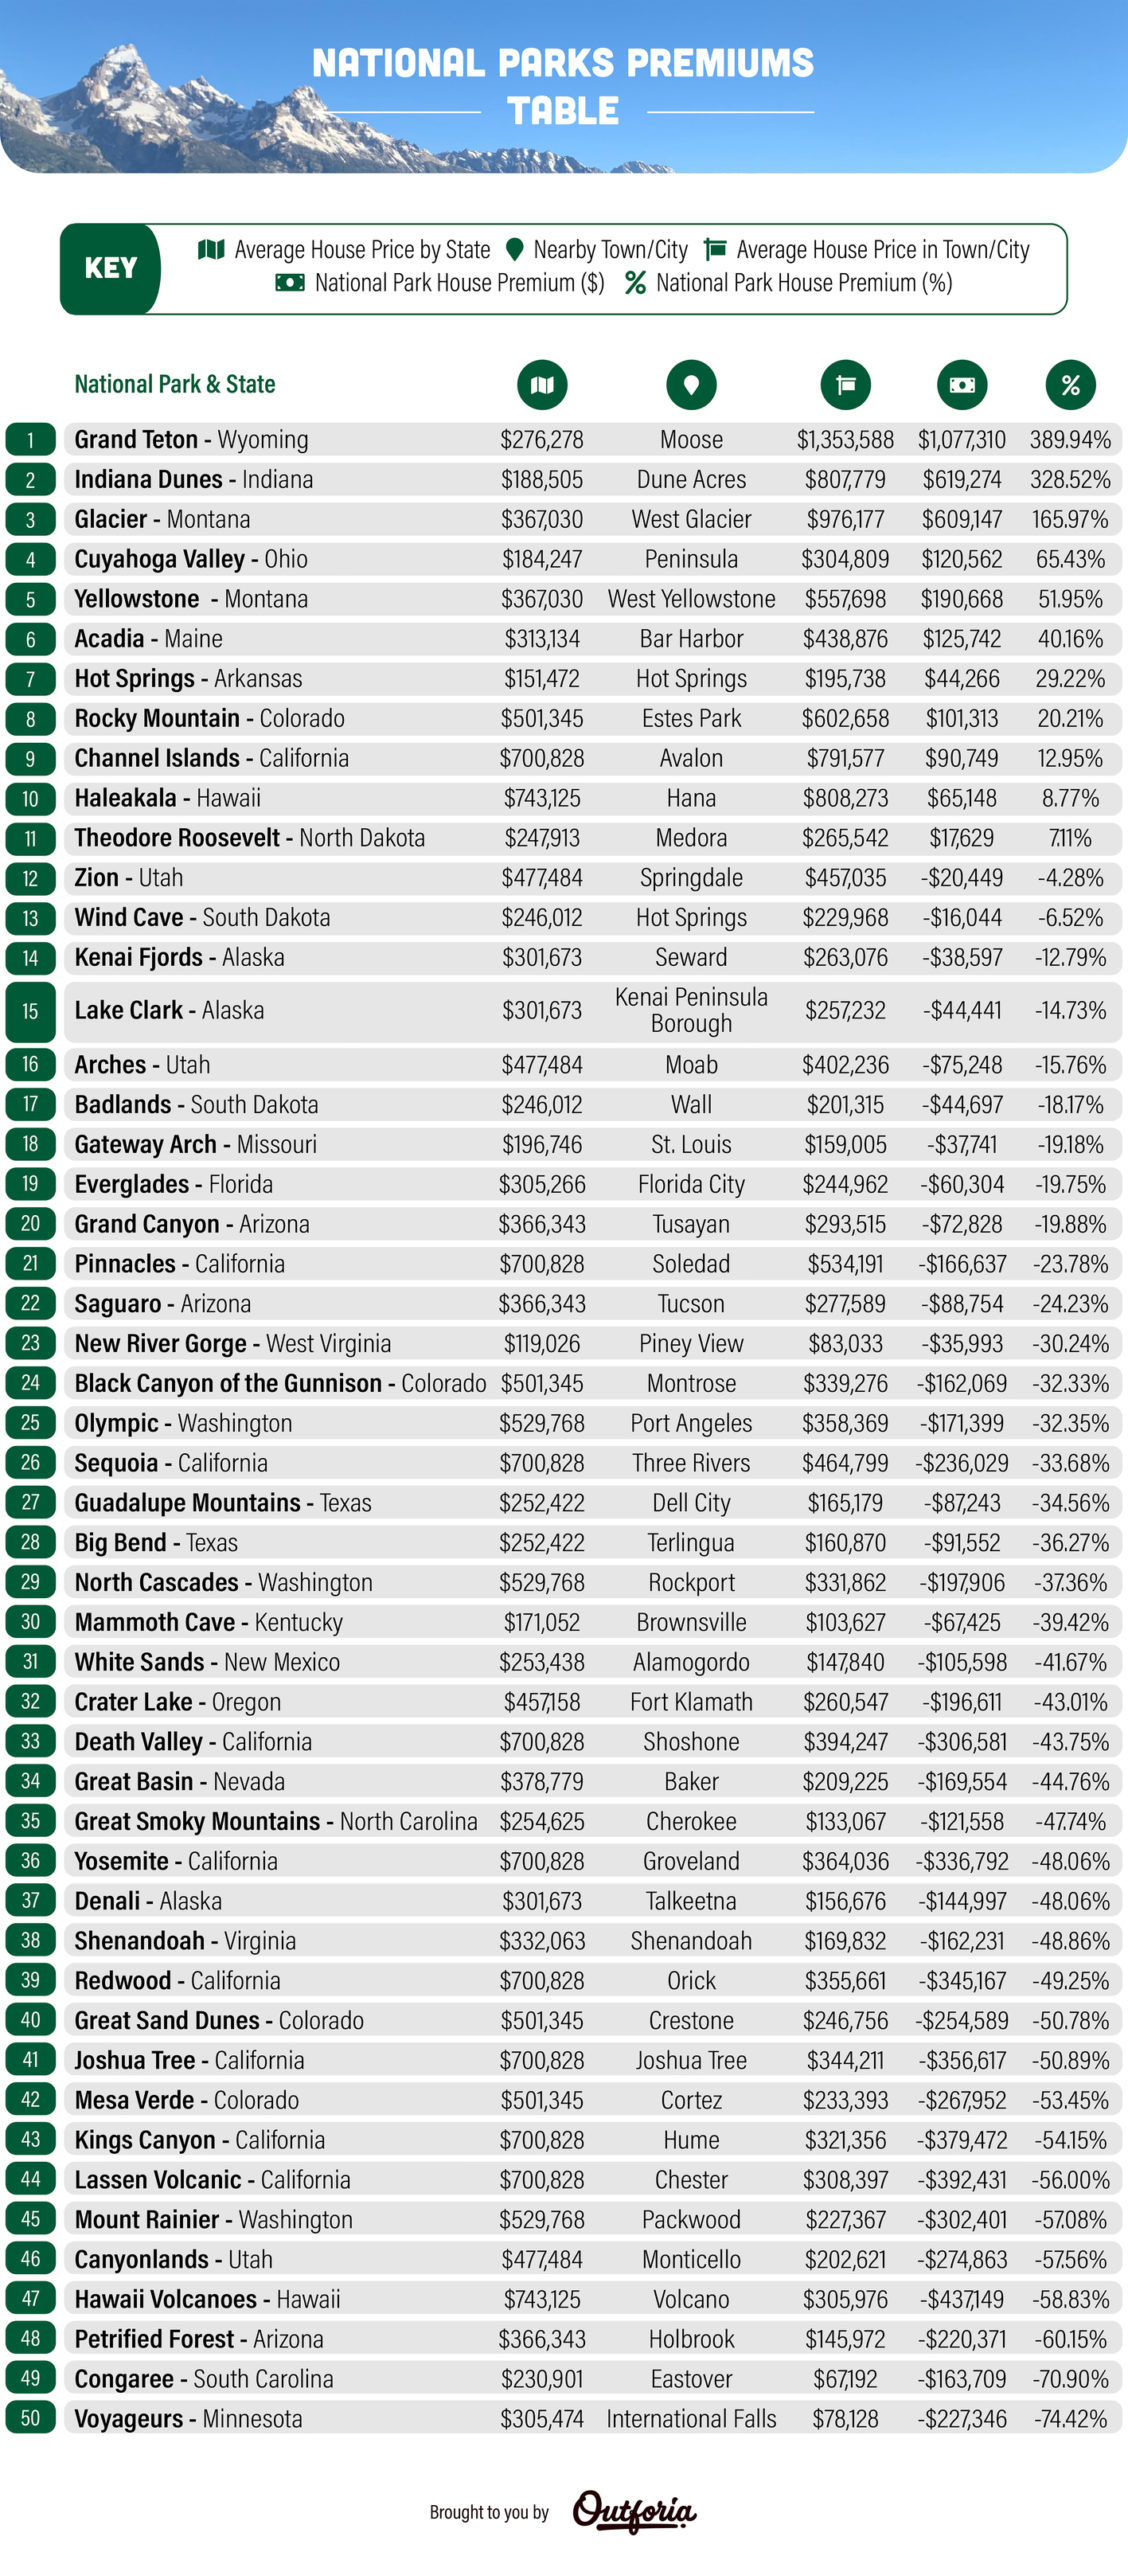 national parks premiums table